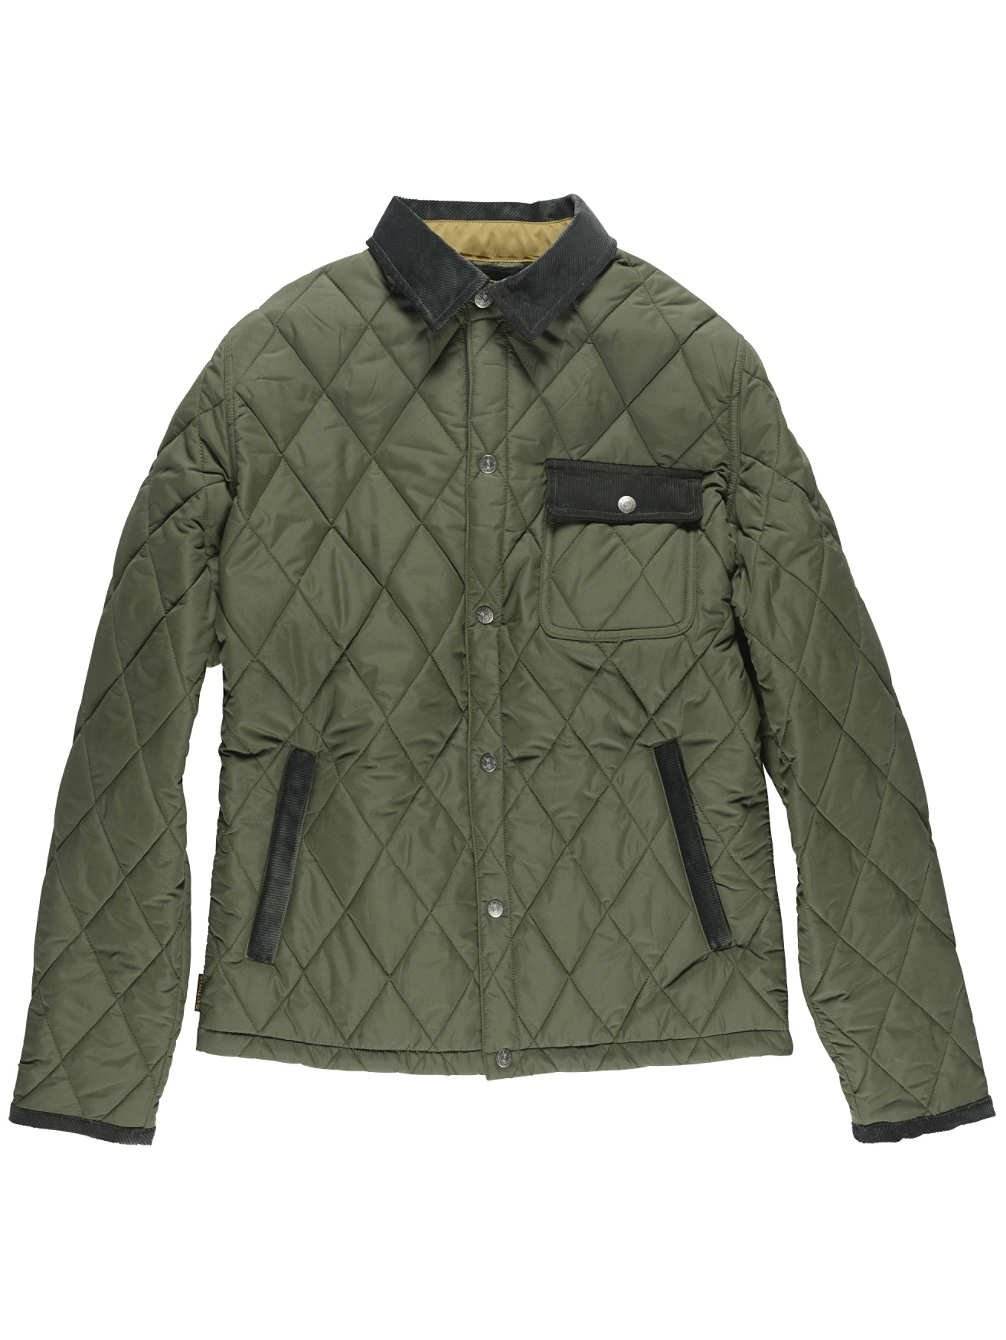 element CASEY JACKET bestellen